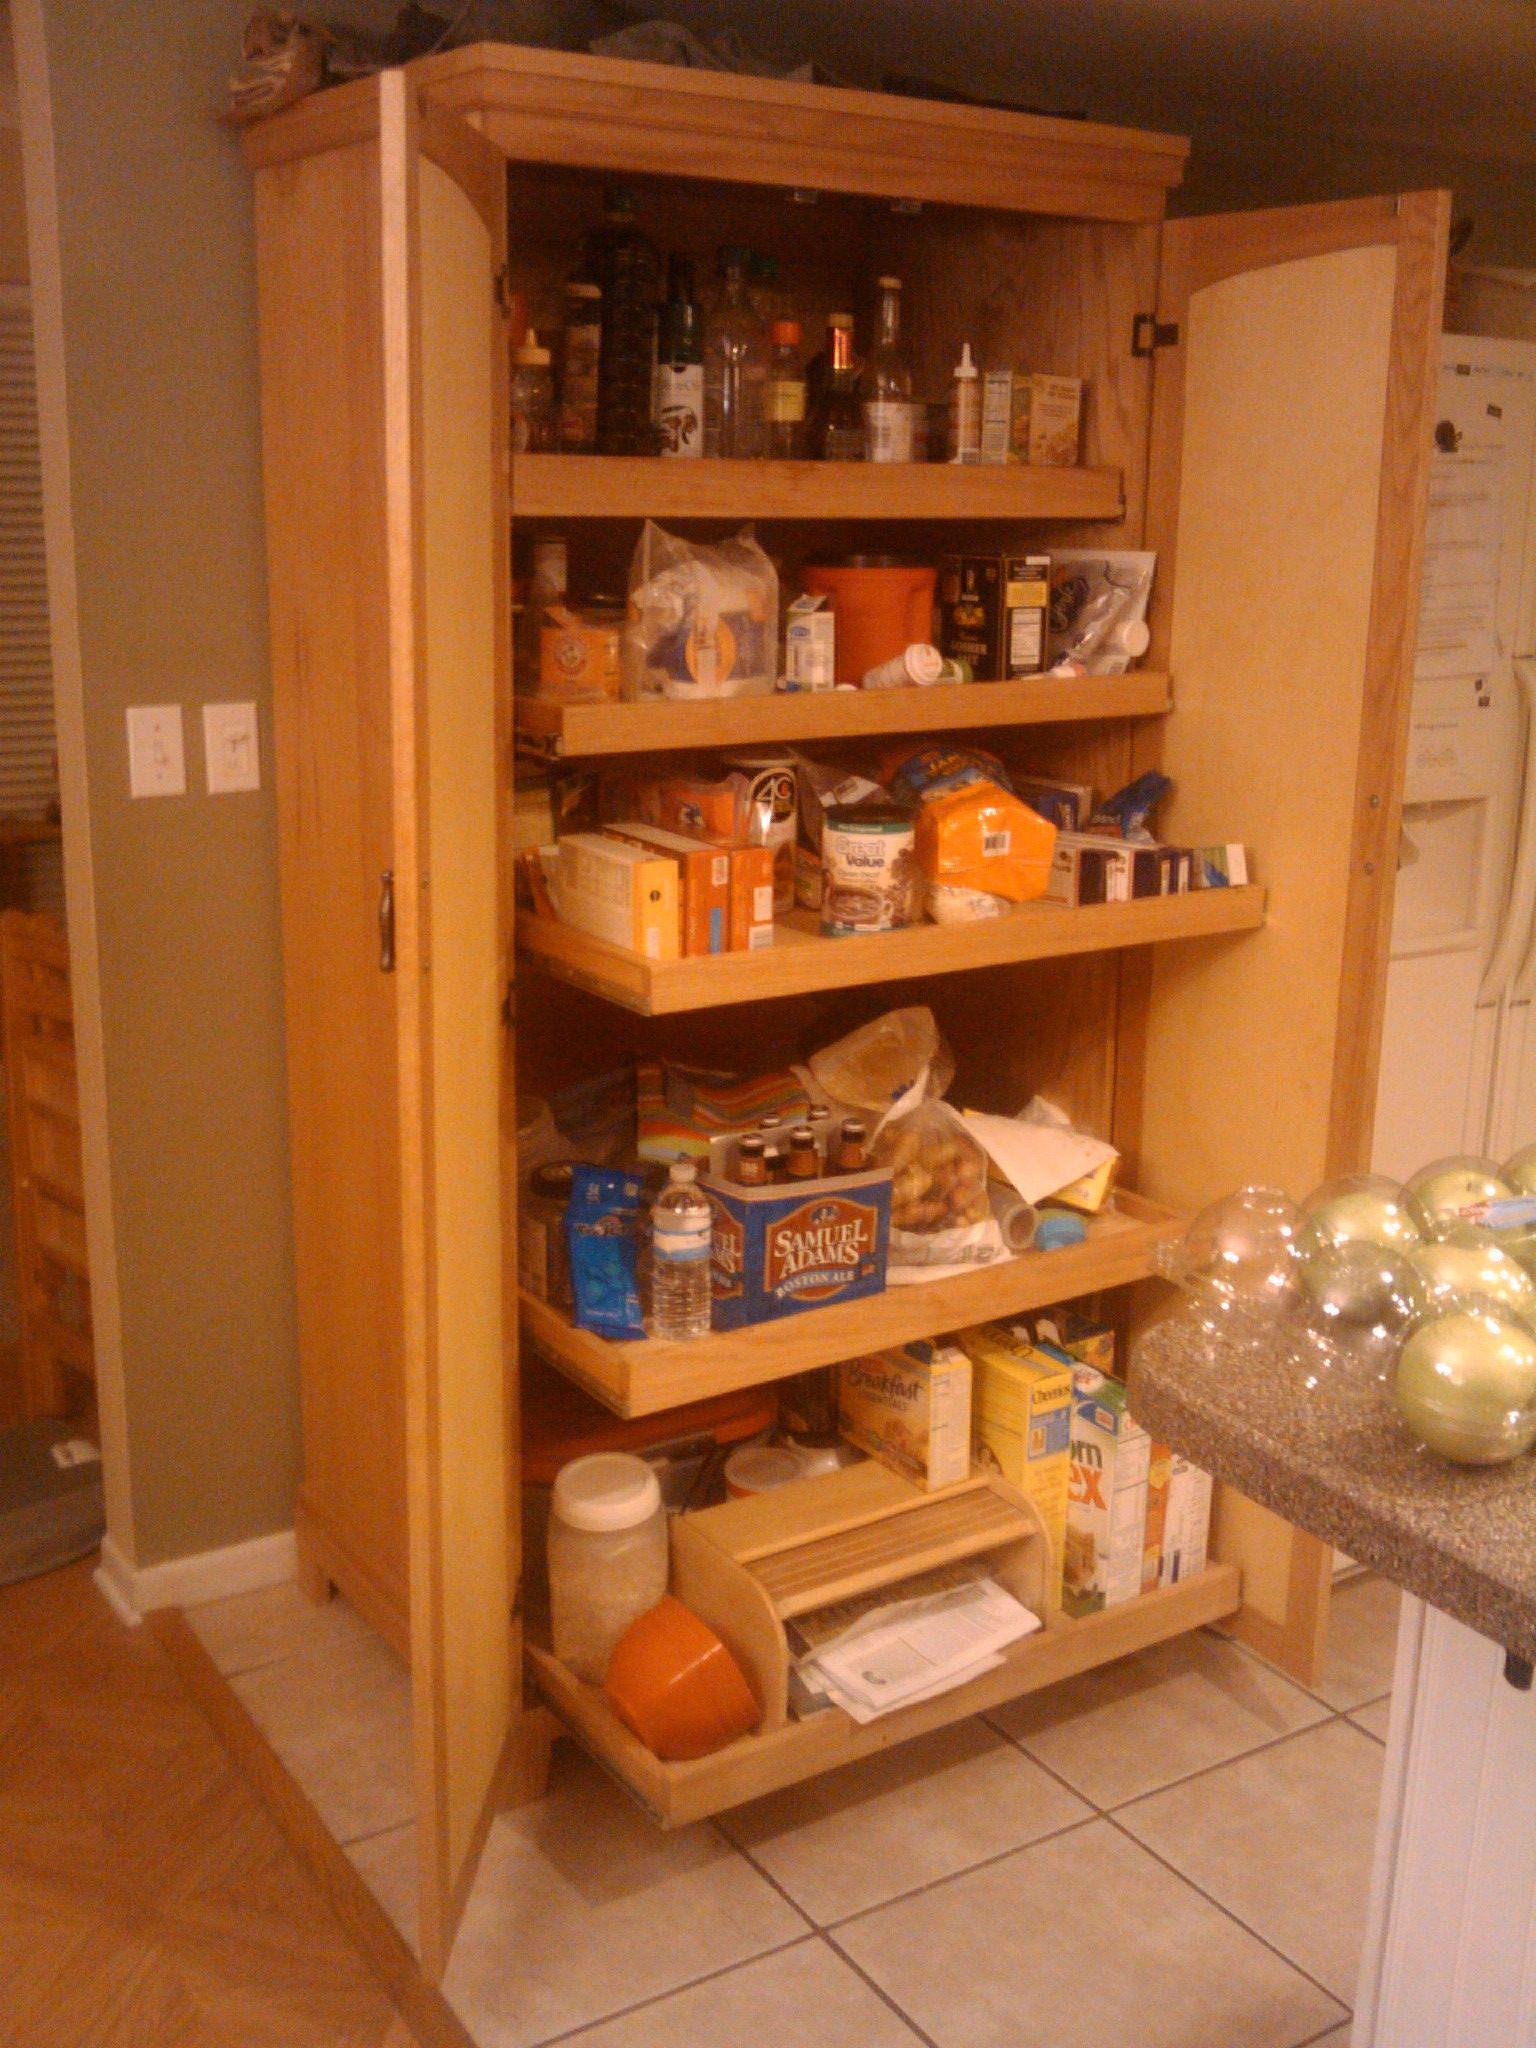 This Instructions For Building This Freestanding Pantry With Great Slide Out Drawe Kitchen Pantry Cabinets Kitchen Pantry Storage Cabinet Freestanding Kitchen